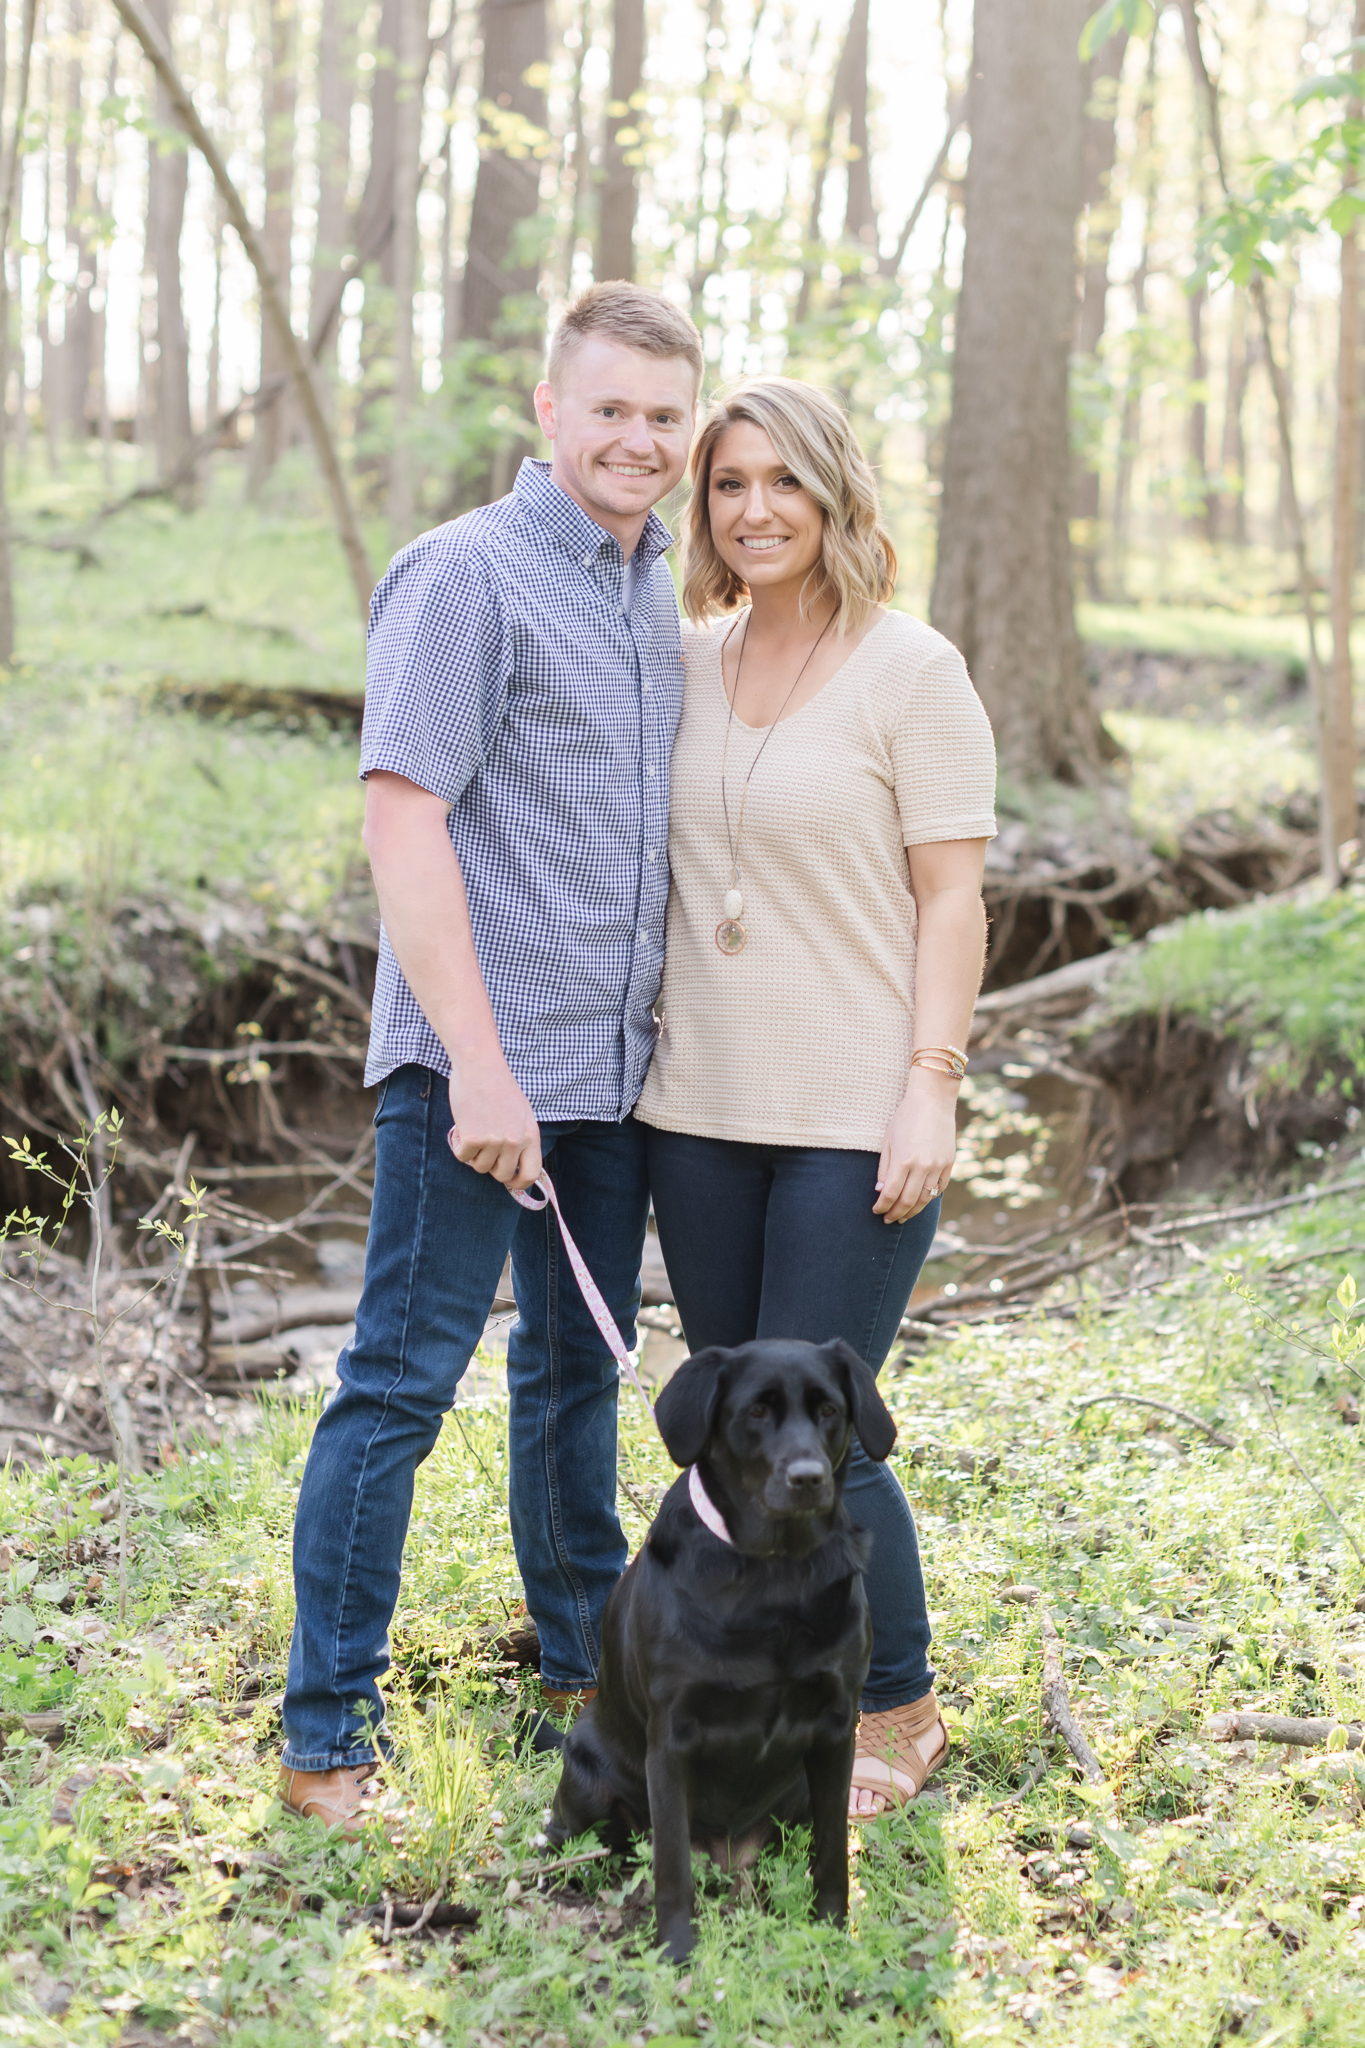 Richie Woods Nature Preserve and Mustard Seed Gardens Engagement Session Wedding Photos-18.jpg